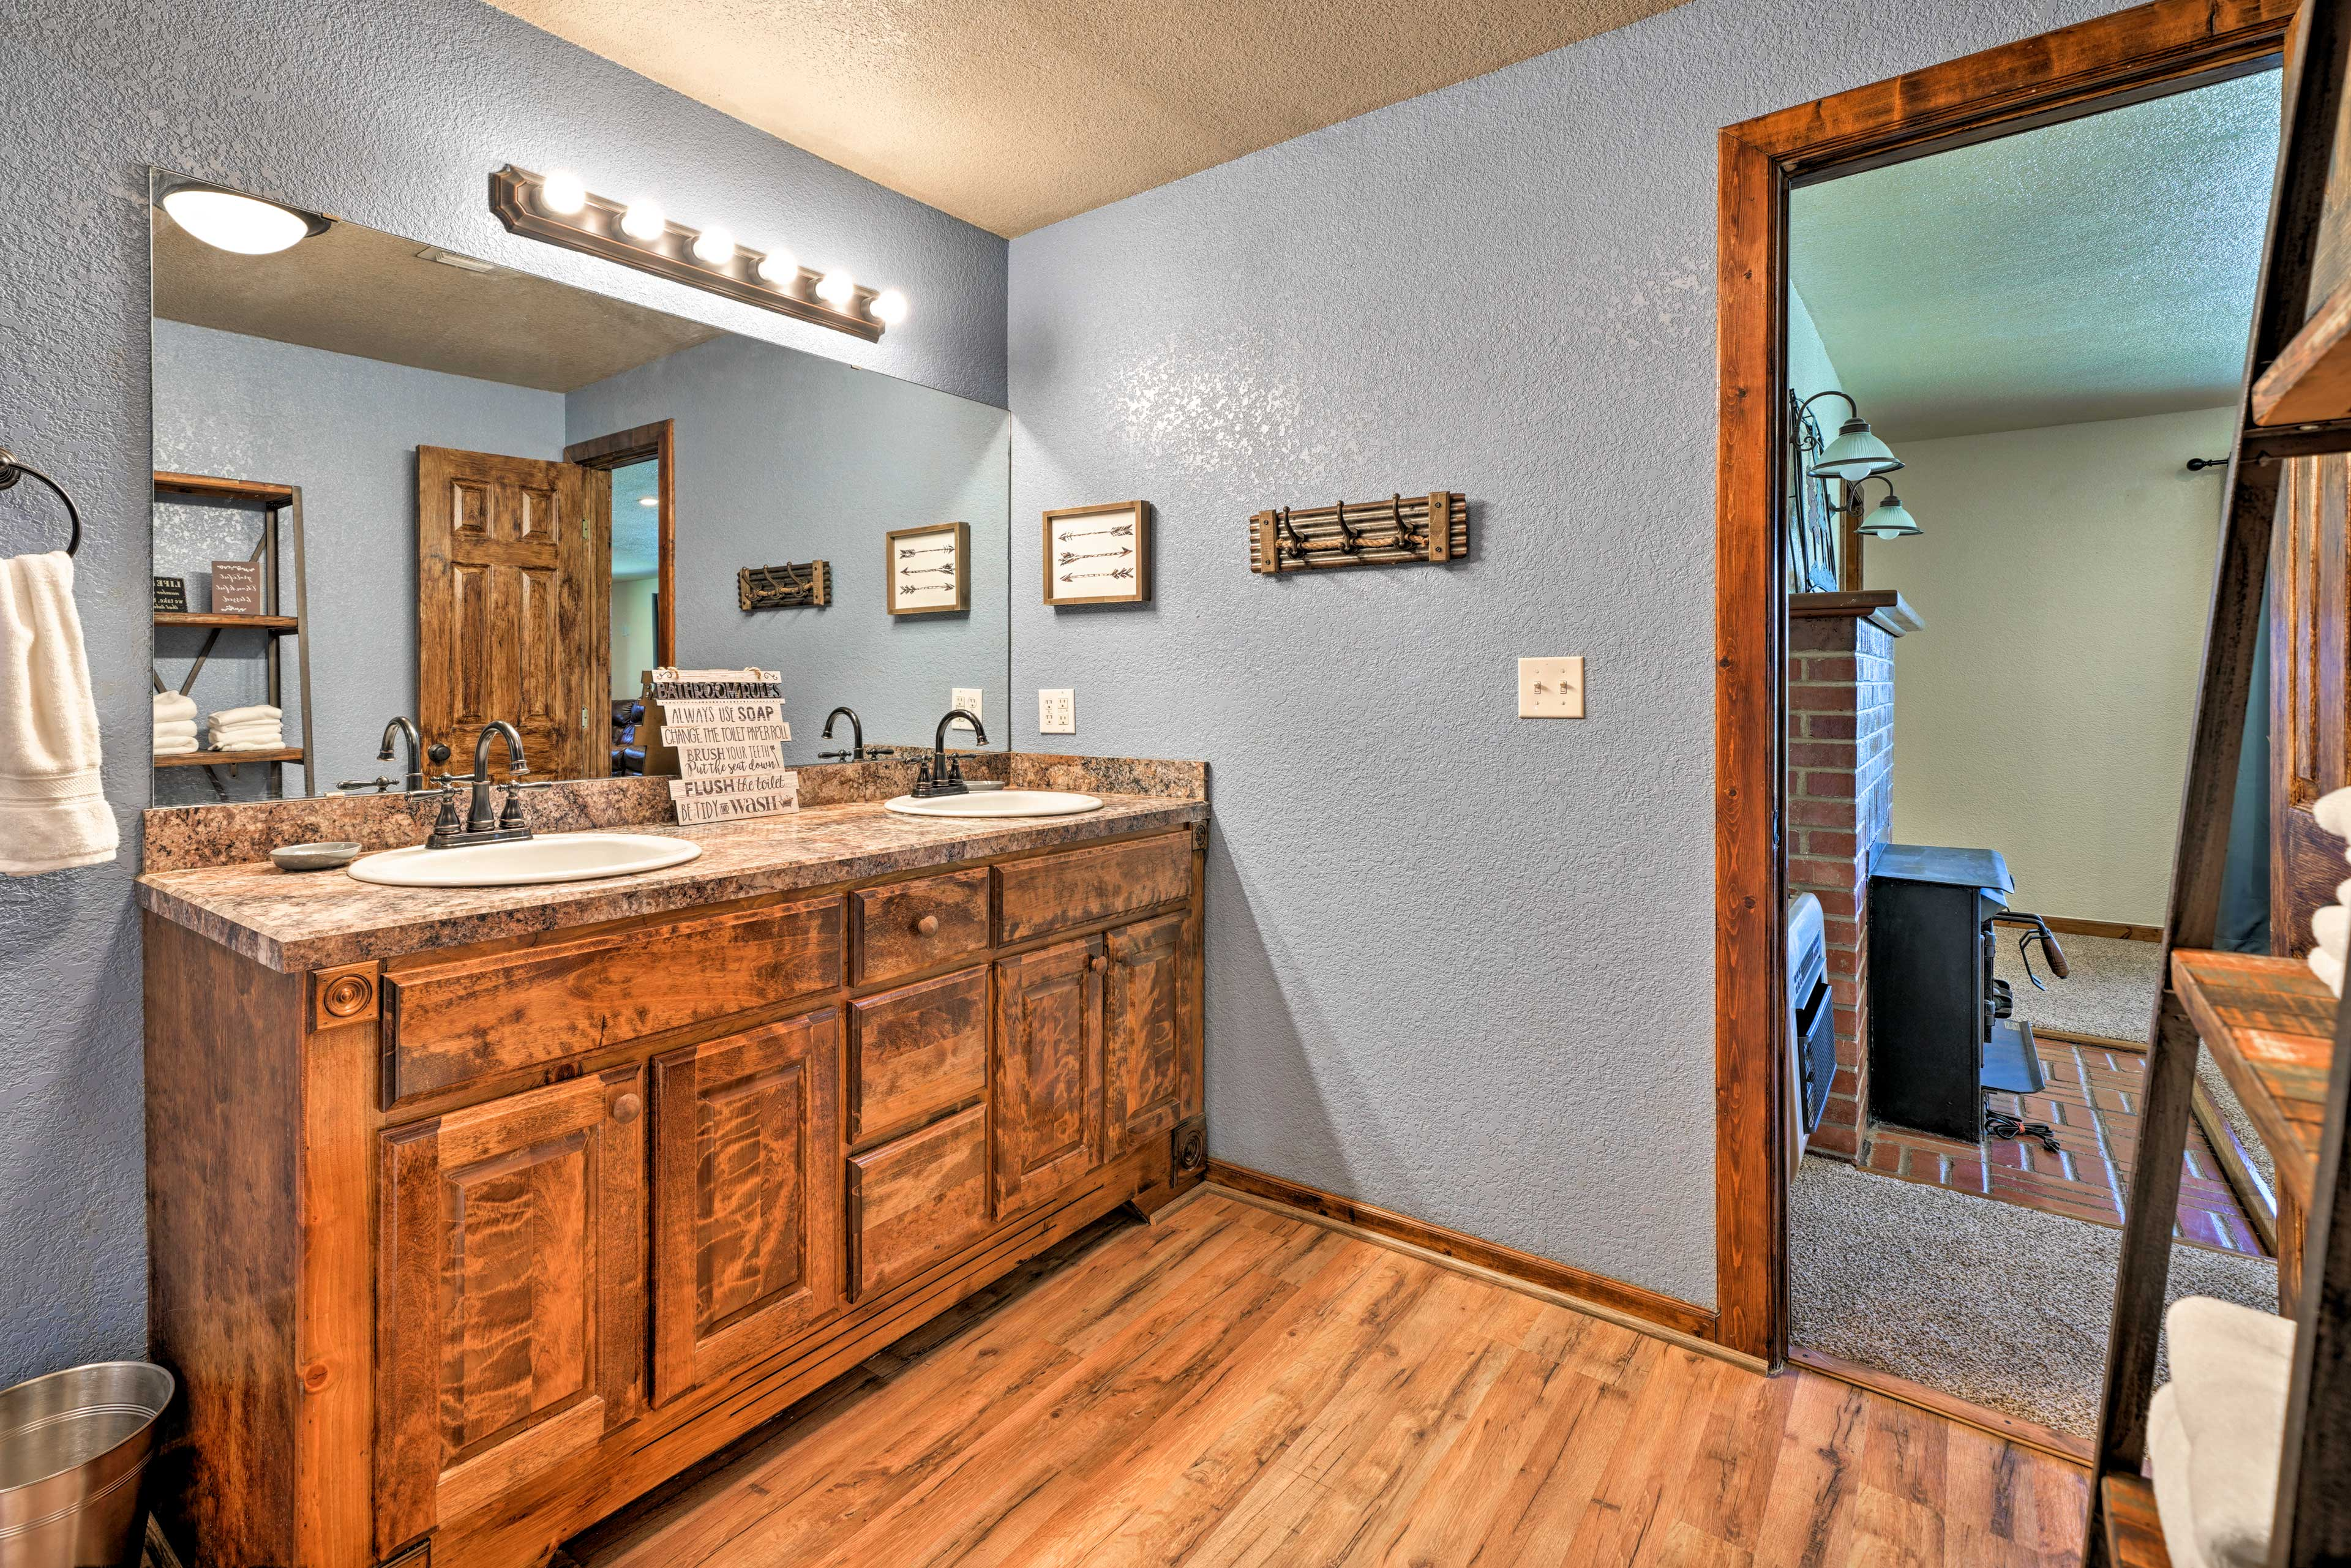 The full bathroom boasts double sinks and bright lighting.